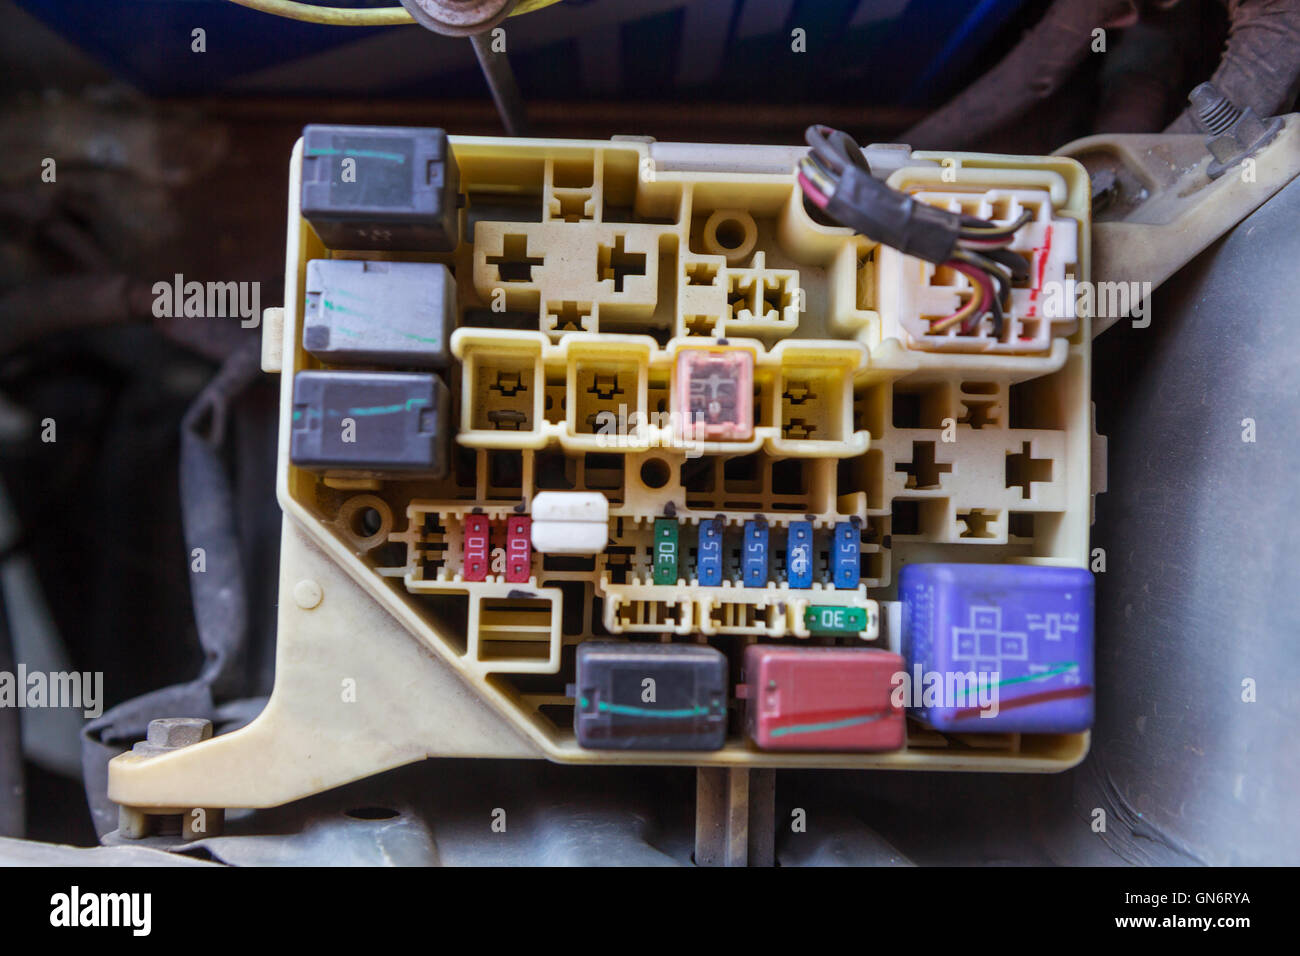 Used Car Fuse Box | Wiring Diagrams Old Car Fuse Box Repair Parts on old clock parts, old window parts, old transmission parts, old pickup topper parts, old vacuum pump parts,